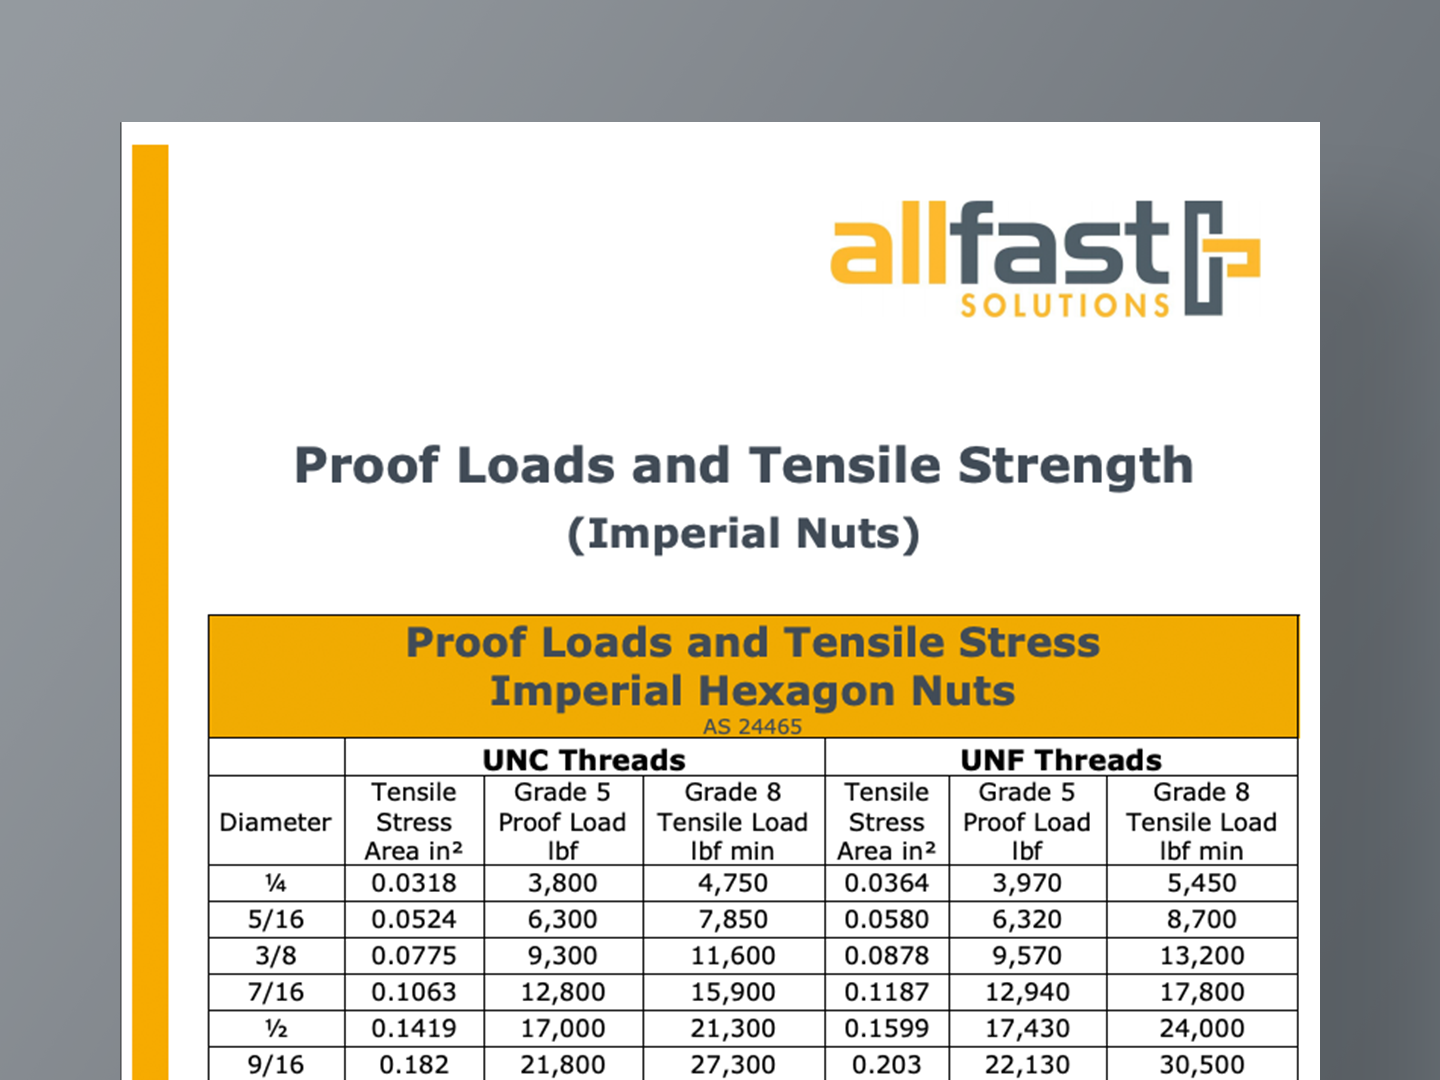 Proof Loads and Tensile Strength (Imperial Nuts)